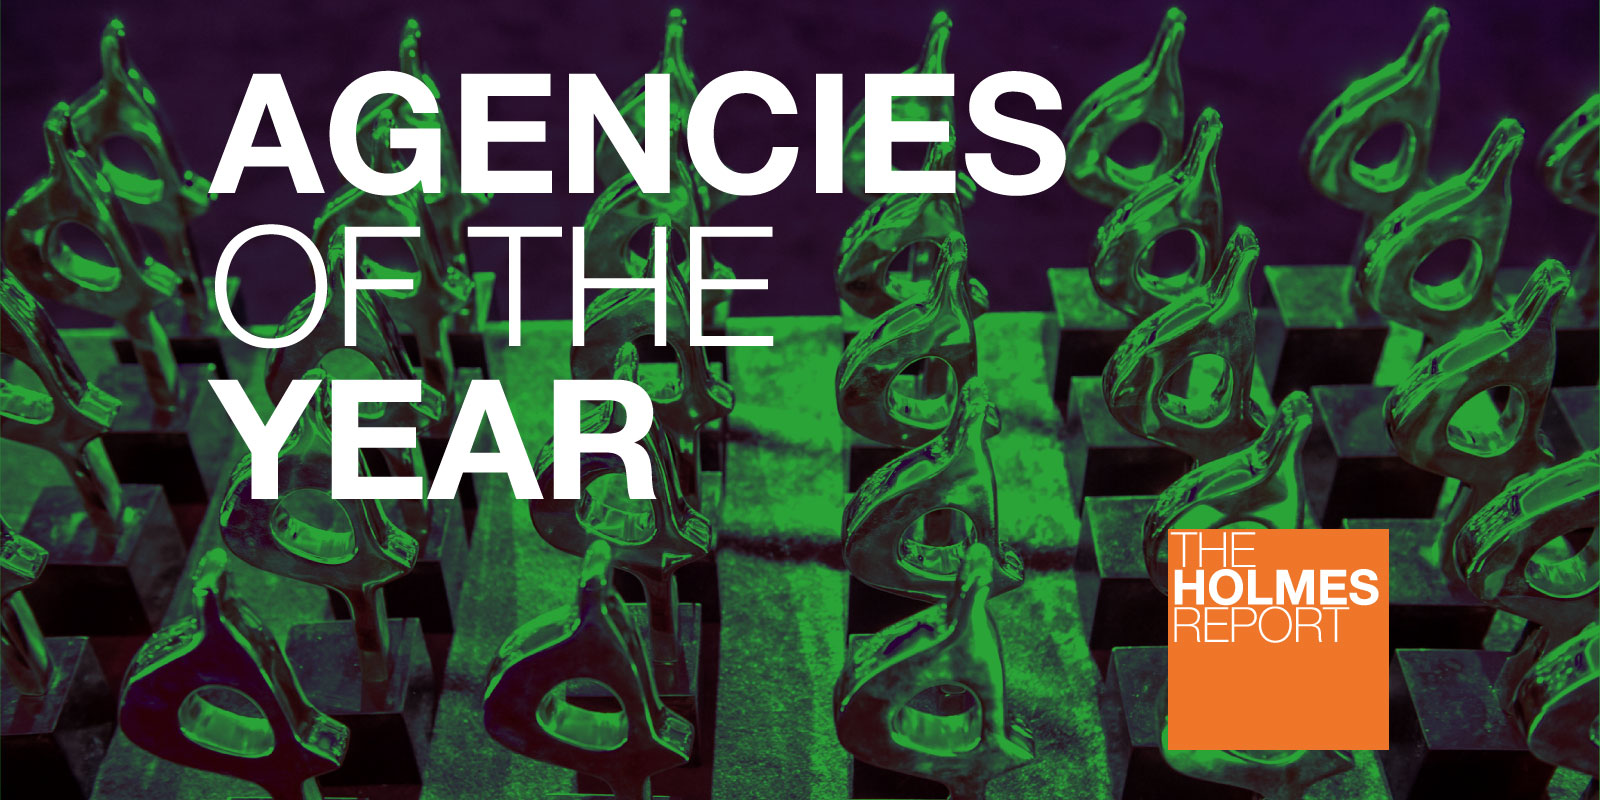 Holmes Report Agencies of the Year